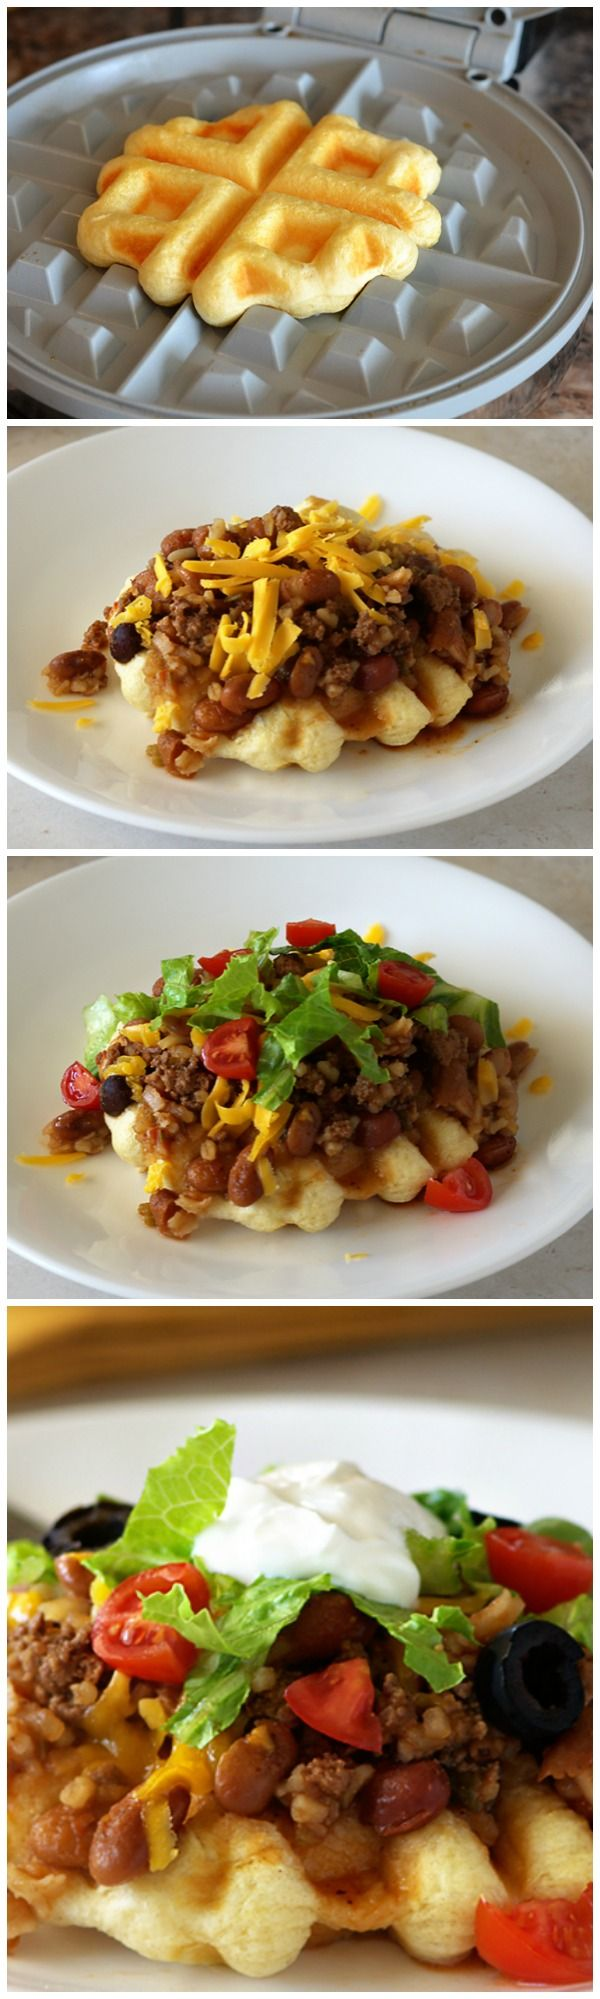 Swap Grands! biscuit-waffles for tostadas in these Tex-Mex Waffle Tacos!